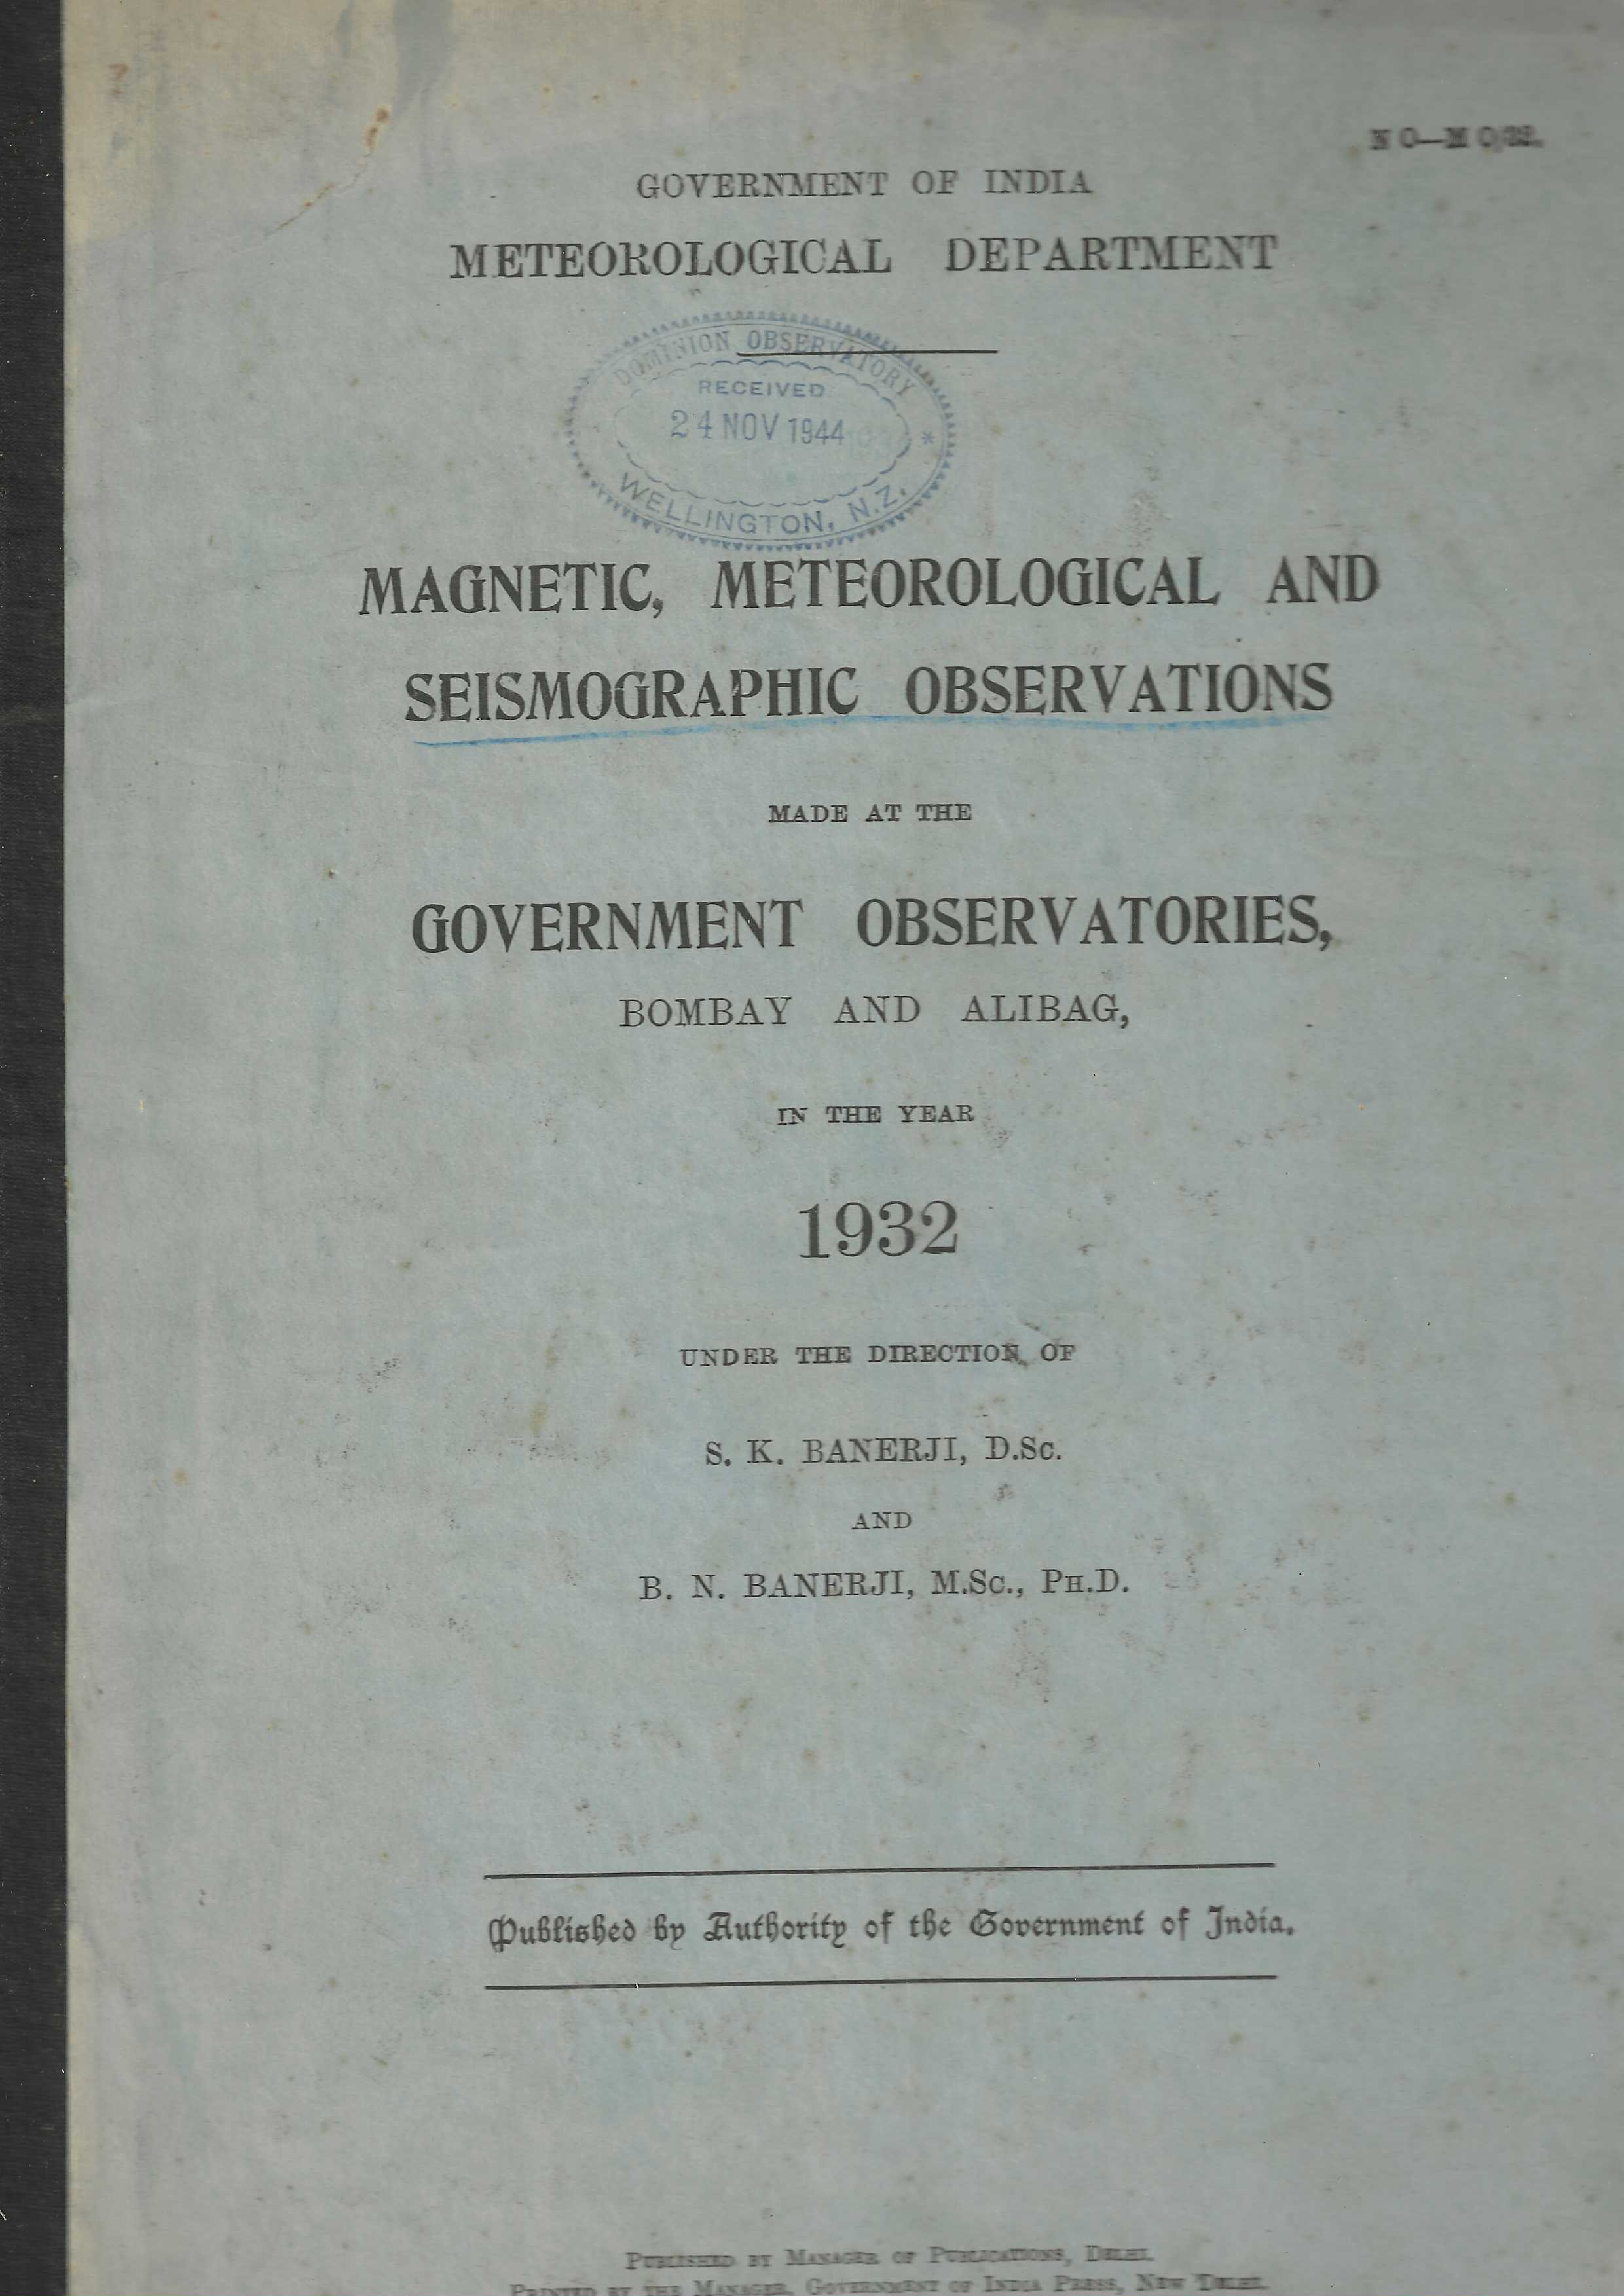 Image for Magnetic, Meteorological and Seismographic Observations made at the Government Observatories, Bombay and Alibag, in the Year 1932.